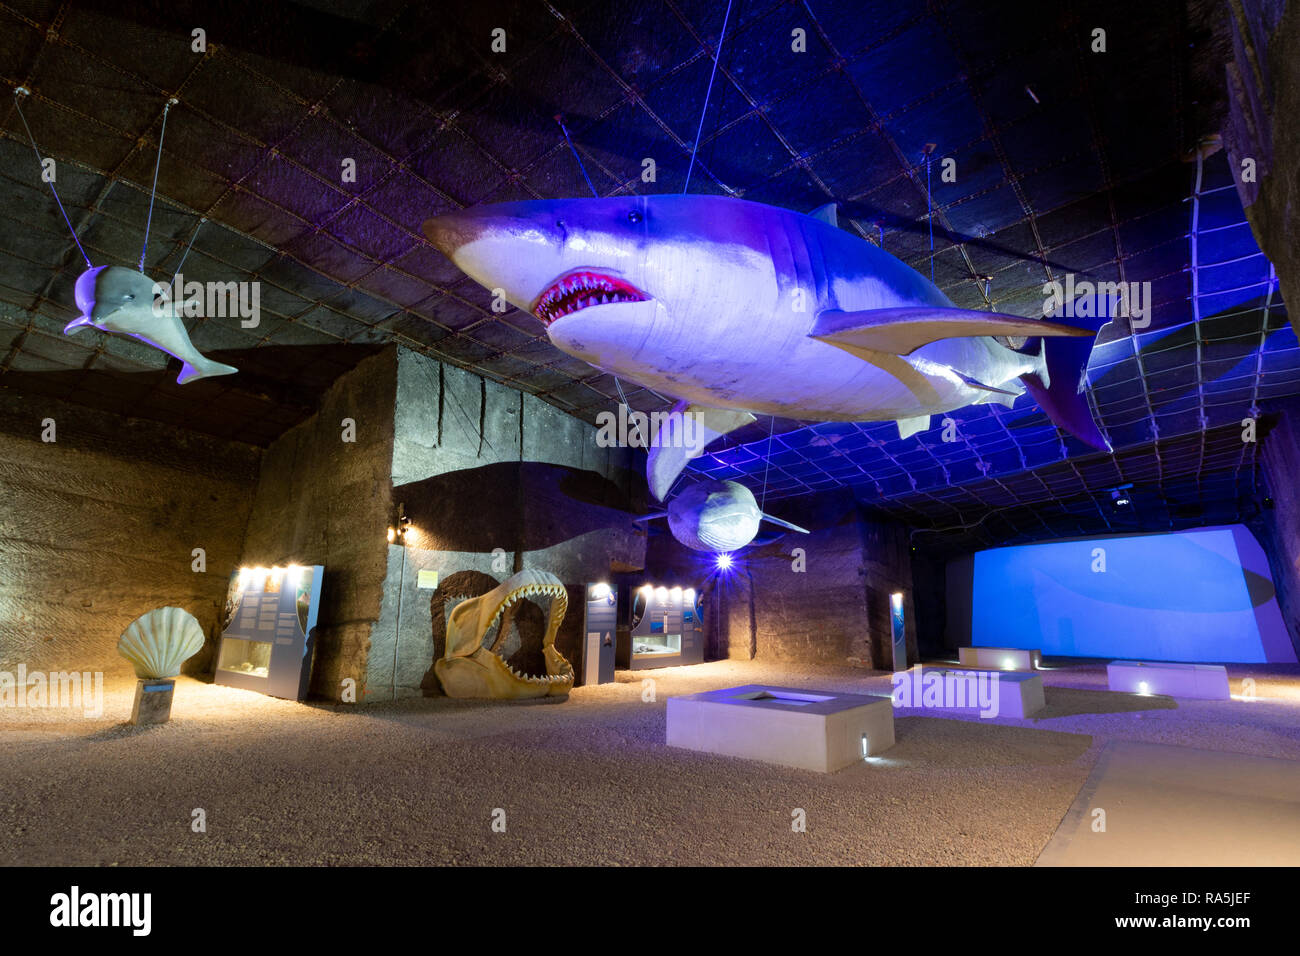 The so called `theme park` exhibition at the limestone quarry cave in Fertorakos, Hungary. - Stock Image